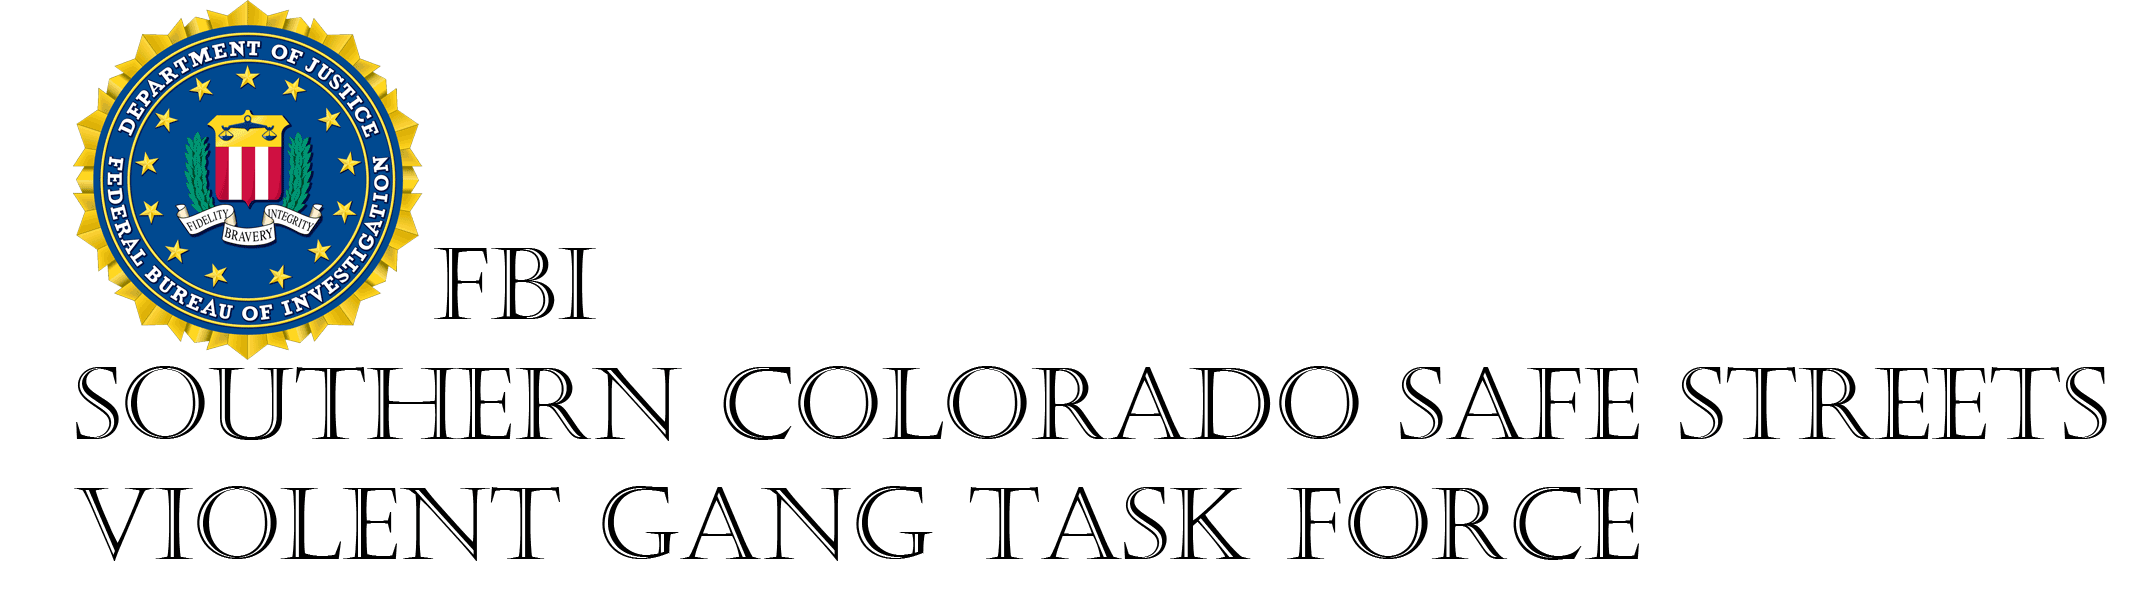 Southern Colorado Safe Streets Violent Gang Task Force